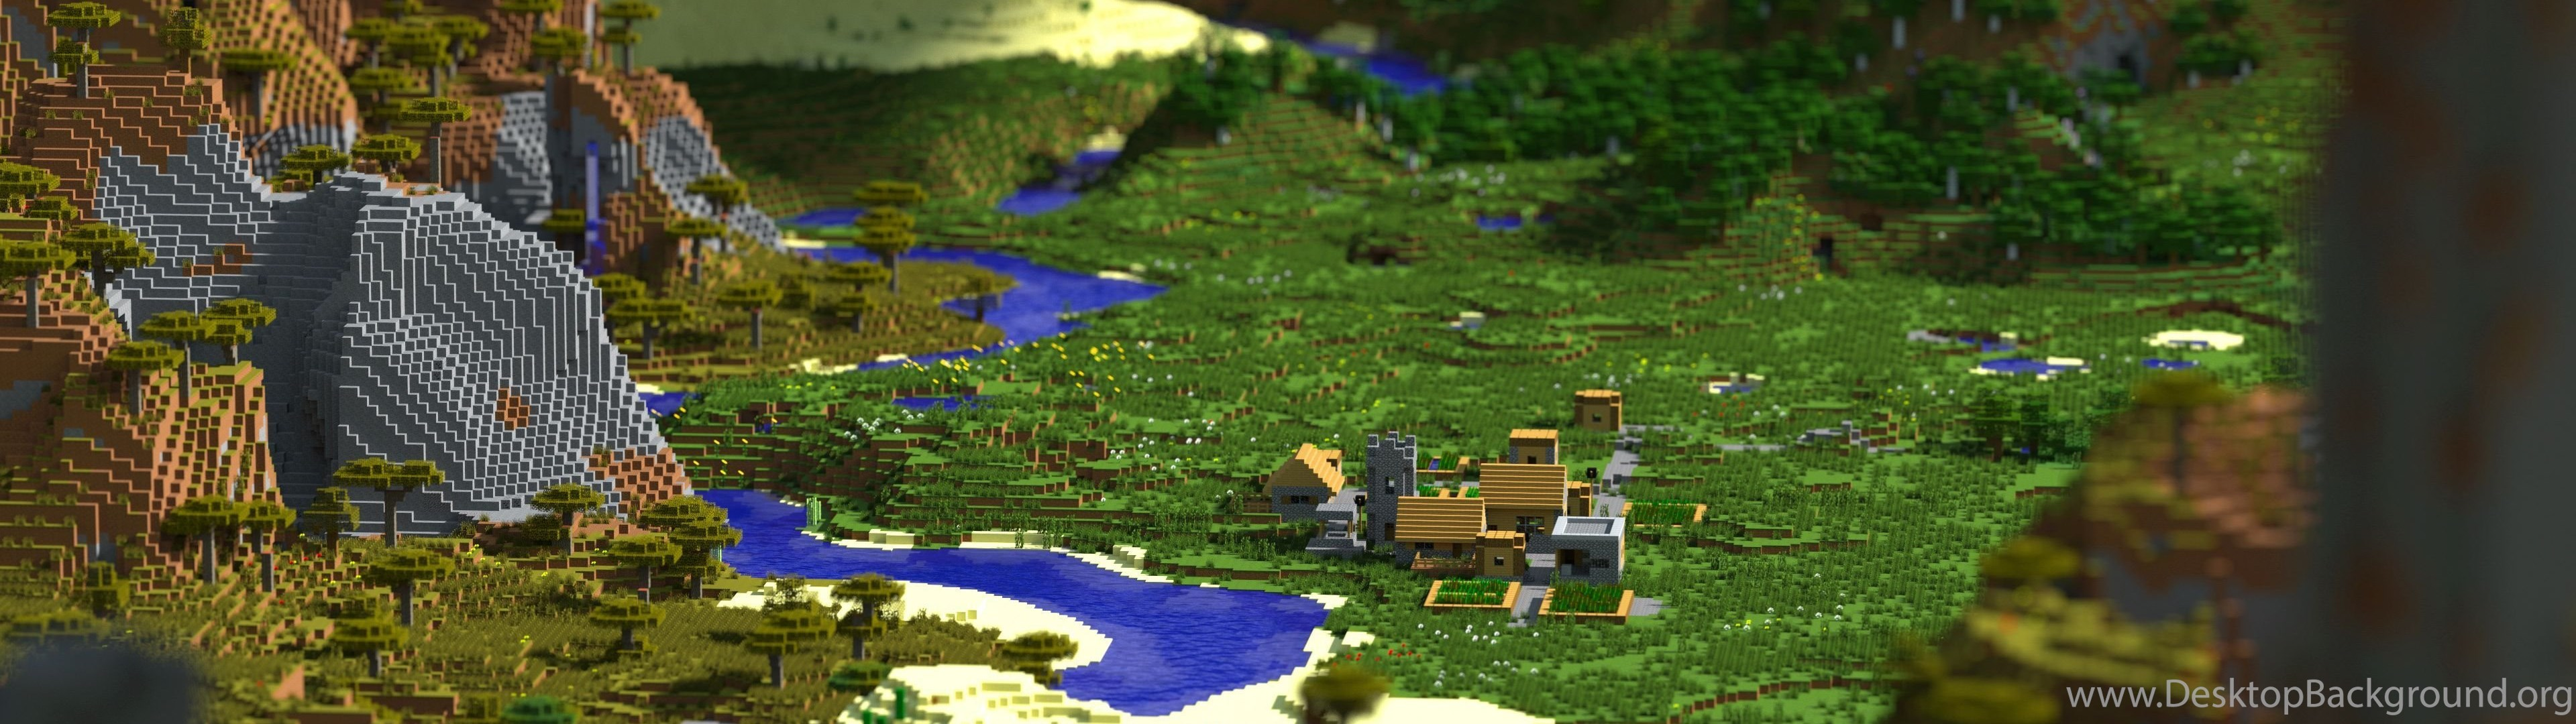 Great Wallpaper Minecraft Dual Screen - 185327_minecraft-deviantart_3840x2160_h  Image_43727.jpg